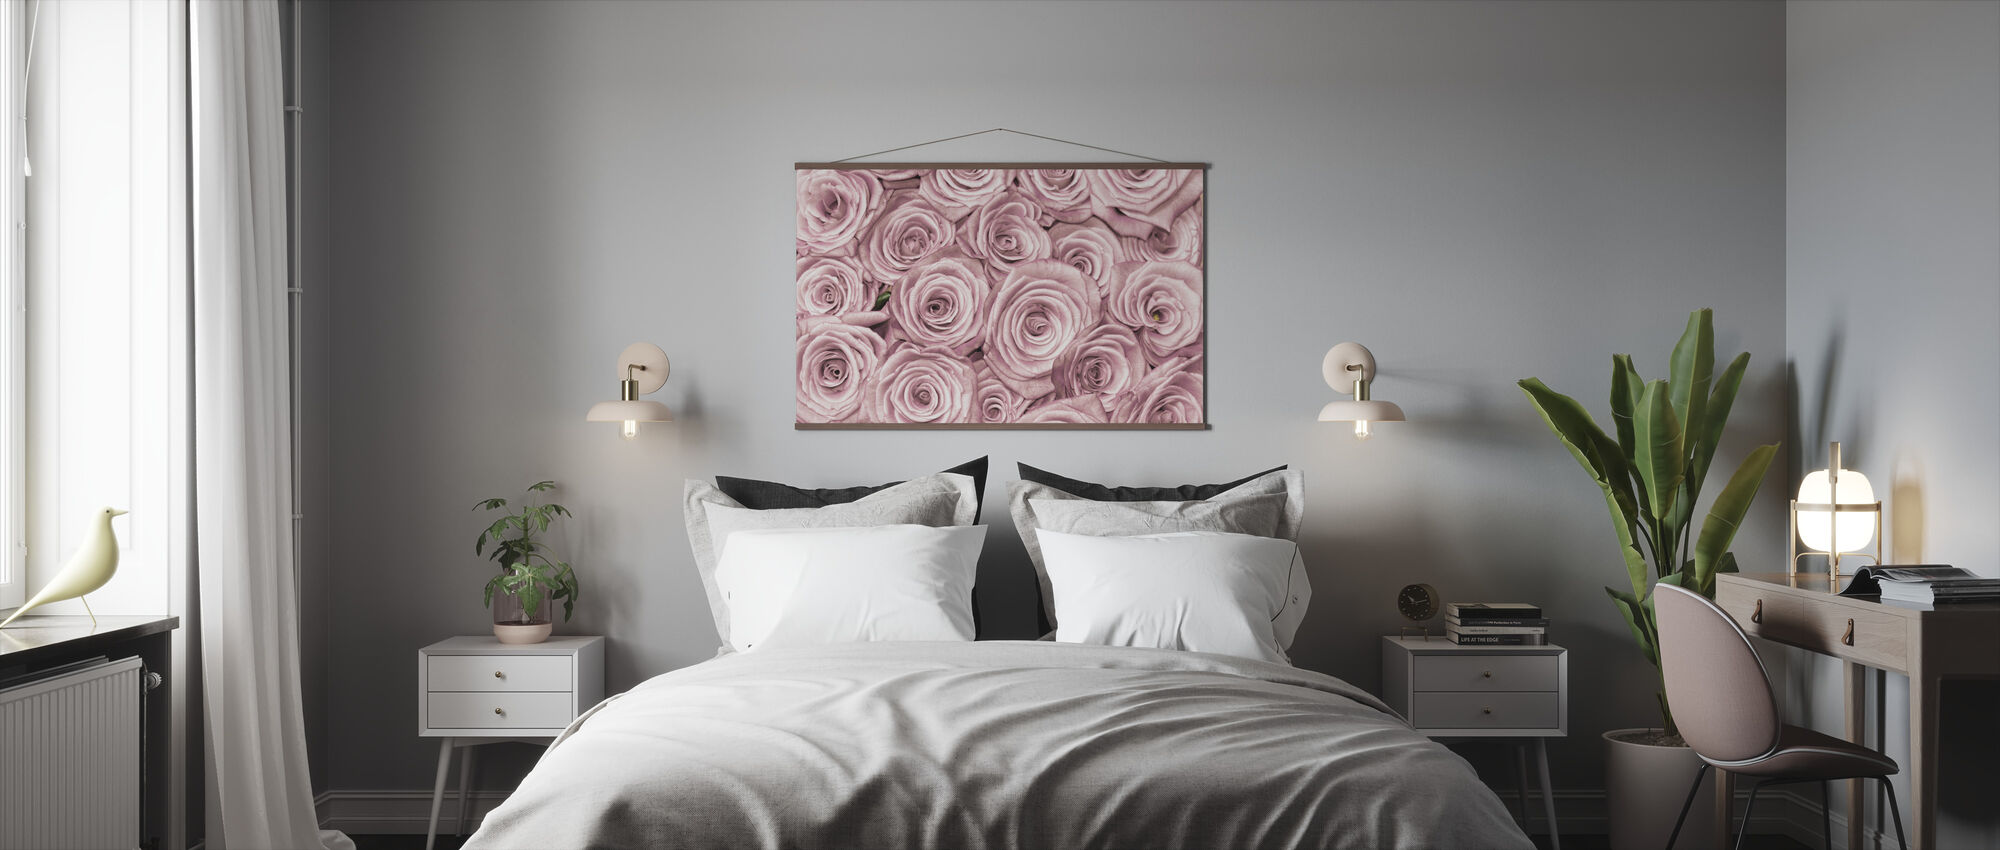 Wall of Roses - Poster - Bedroom